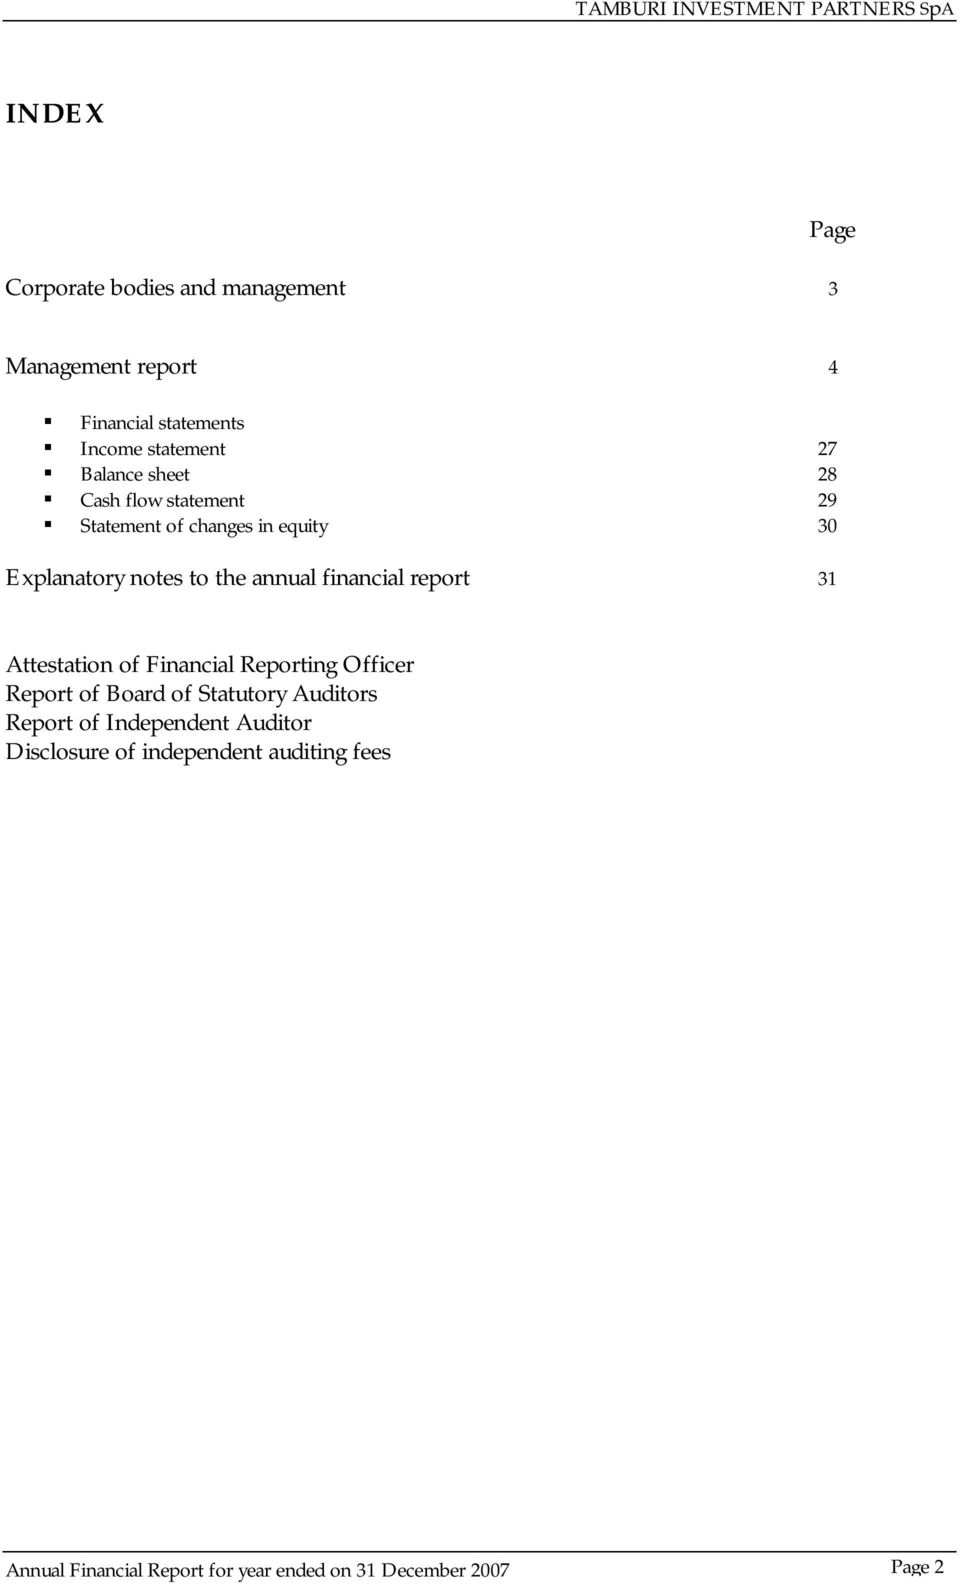 financial report 31 Attestation of Financial Reporting Officer Report of Board of Statutory Auditors Report of